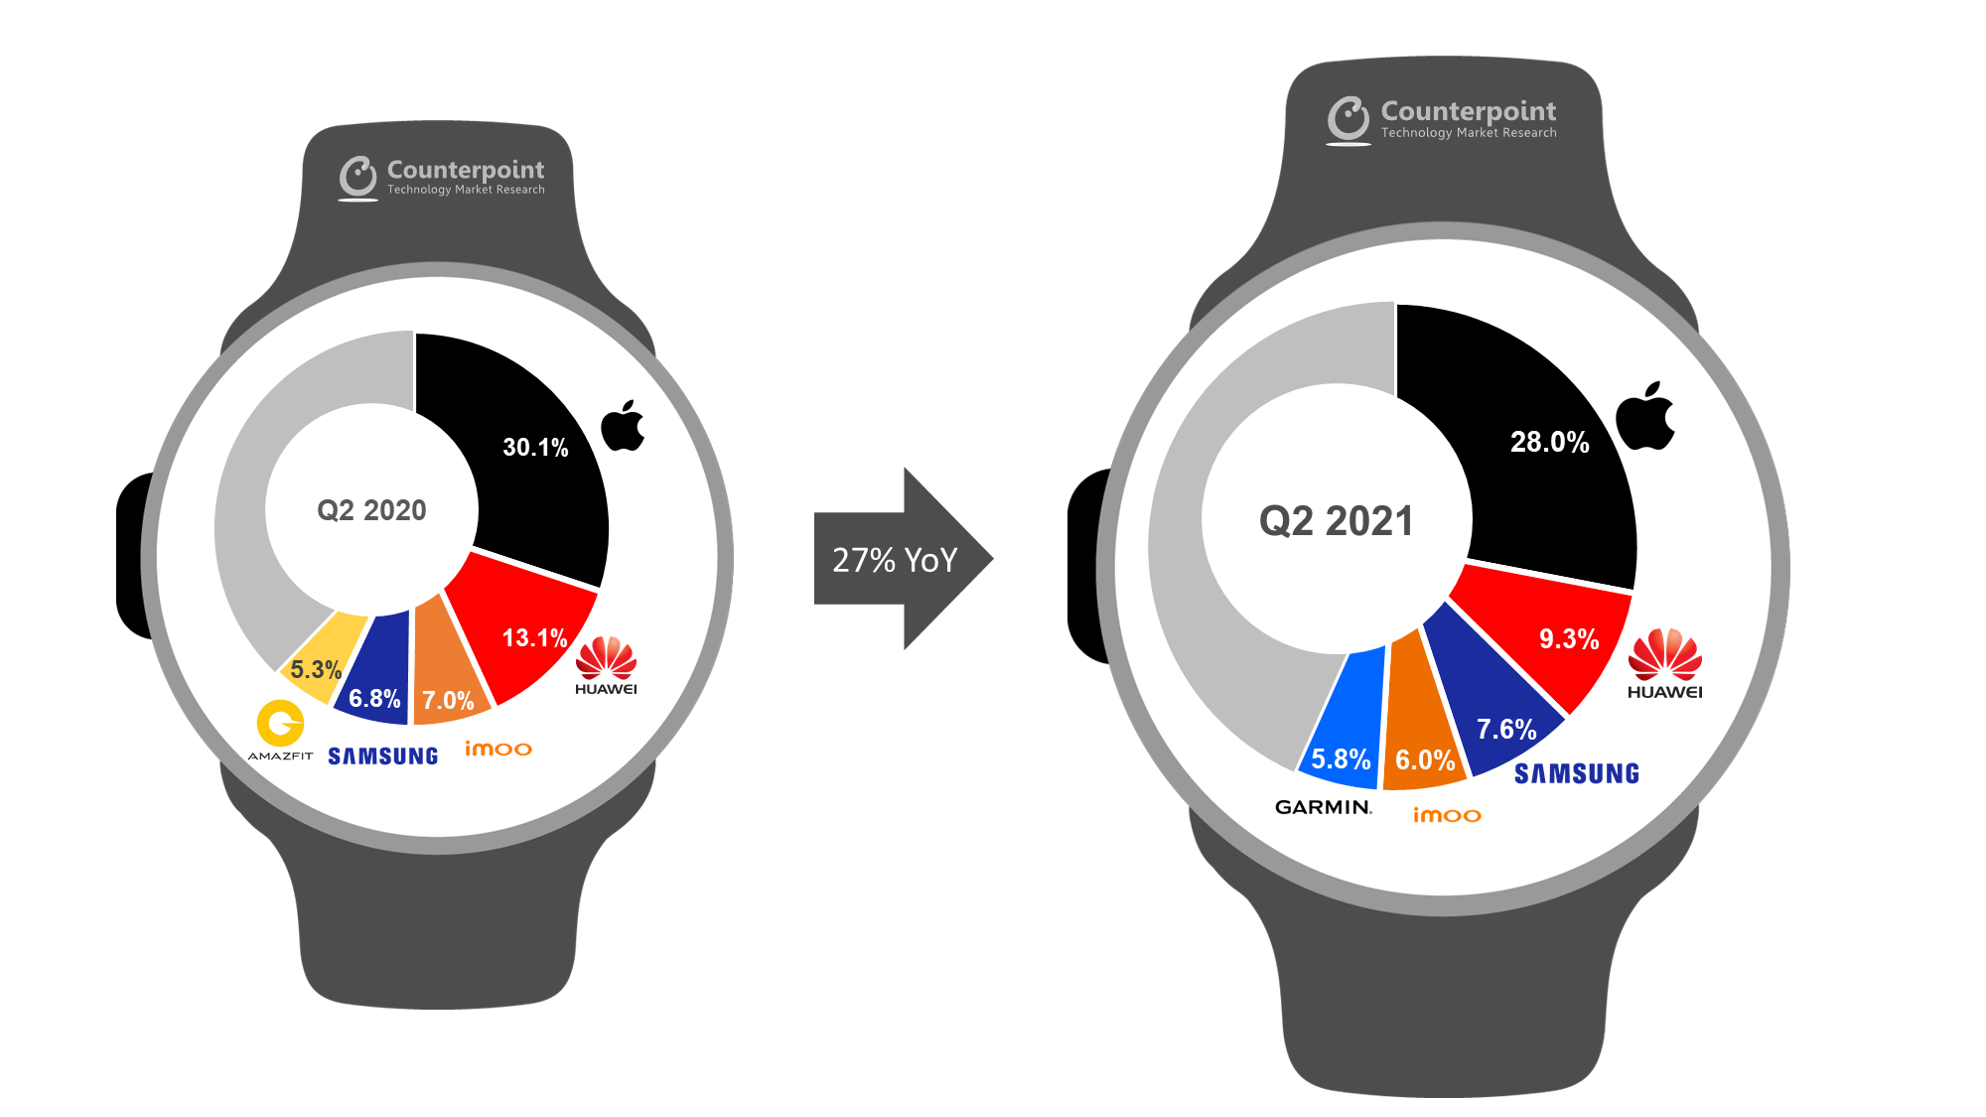 2-Counterpoint-Research-Shipments-of-Global-Top-5-Smartwatch-OEMs-Q2-2021-vs-Q2-2020